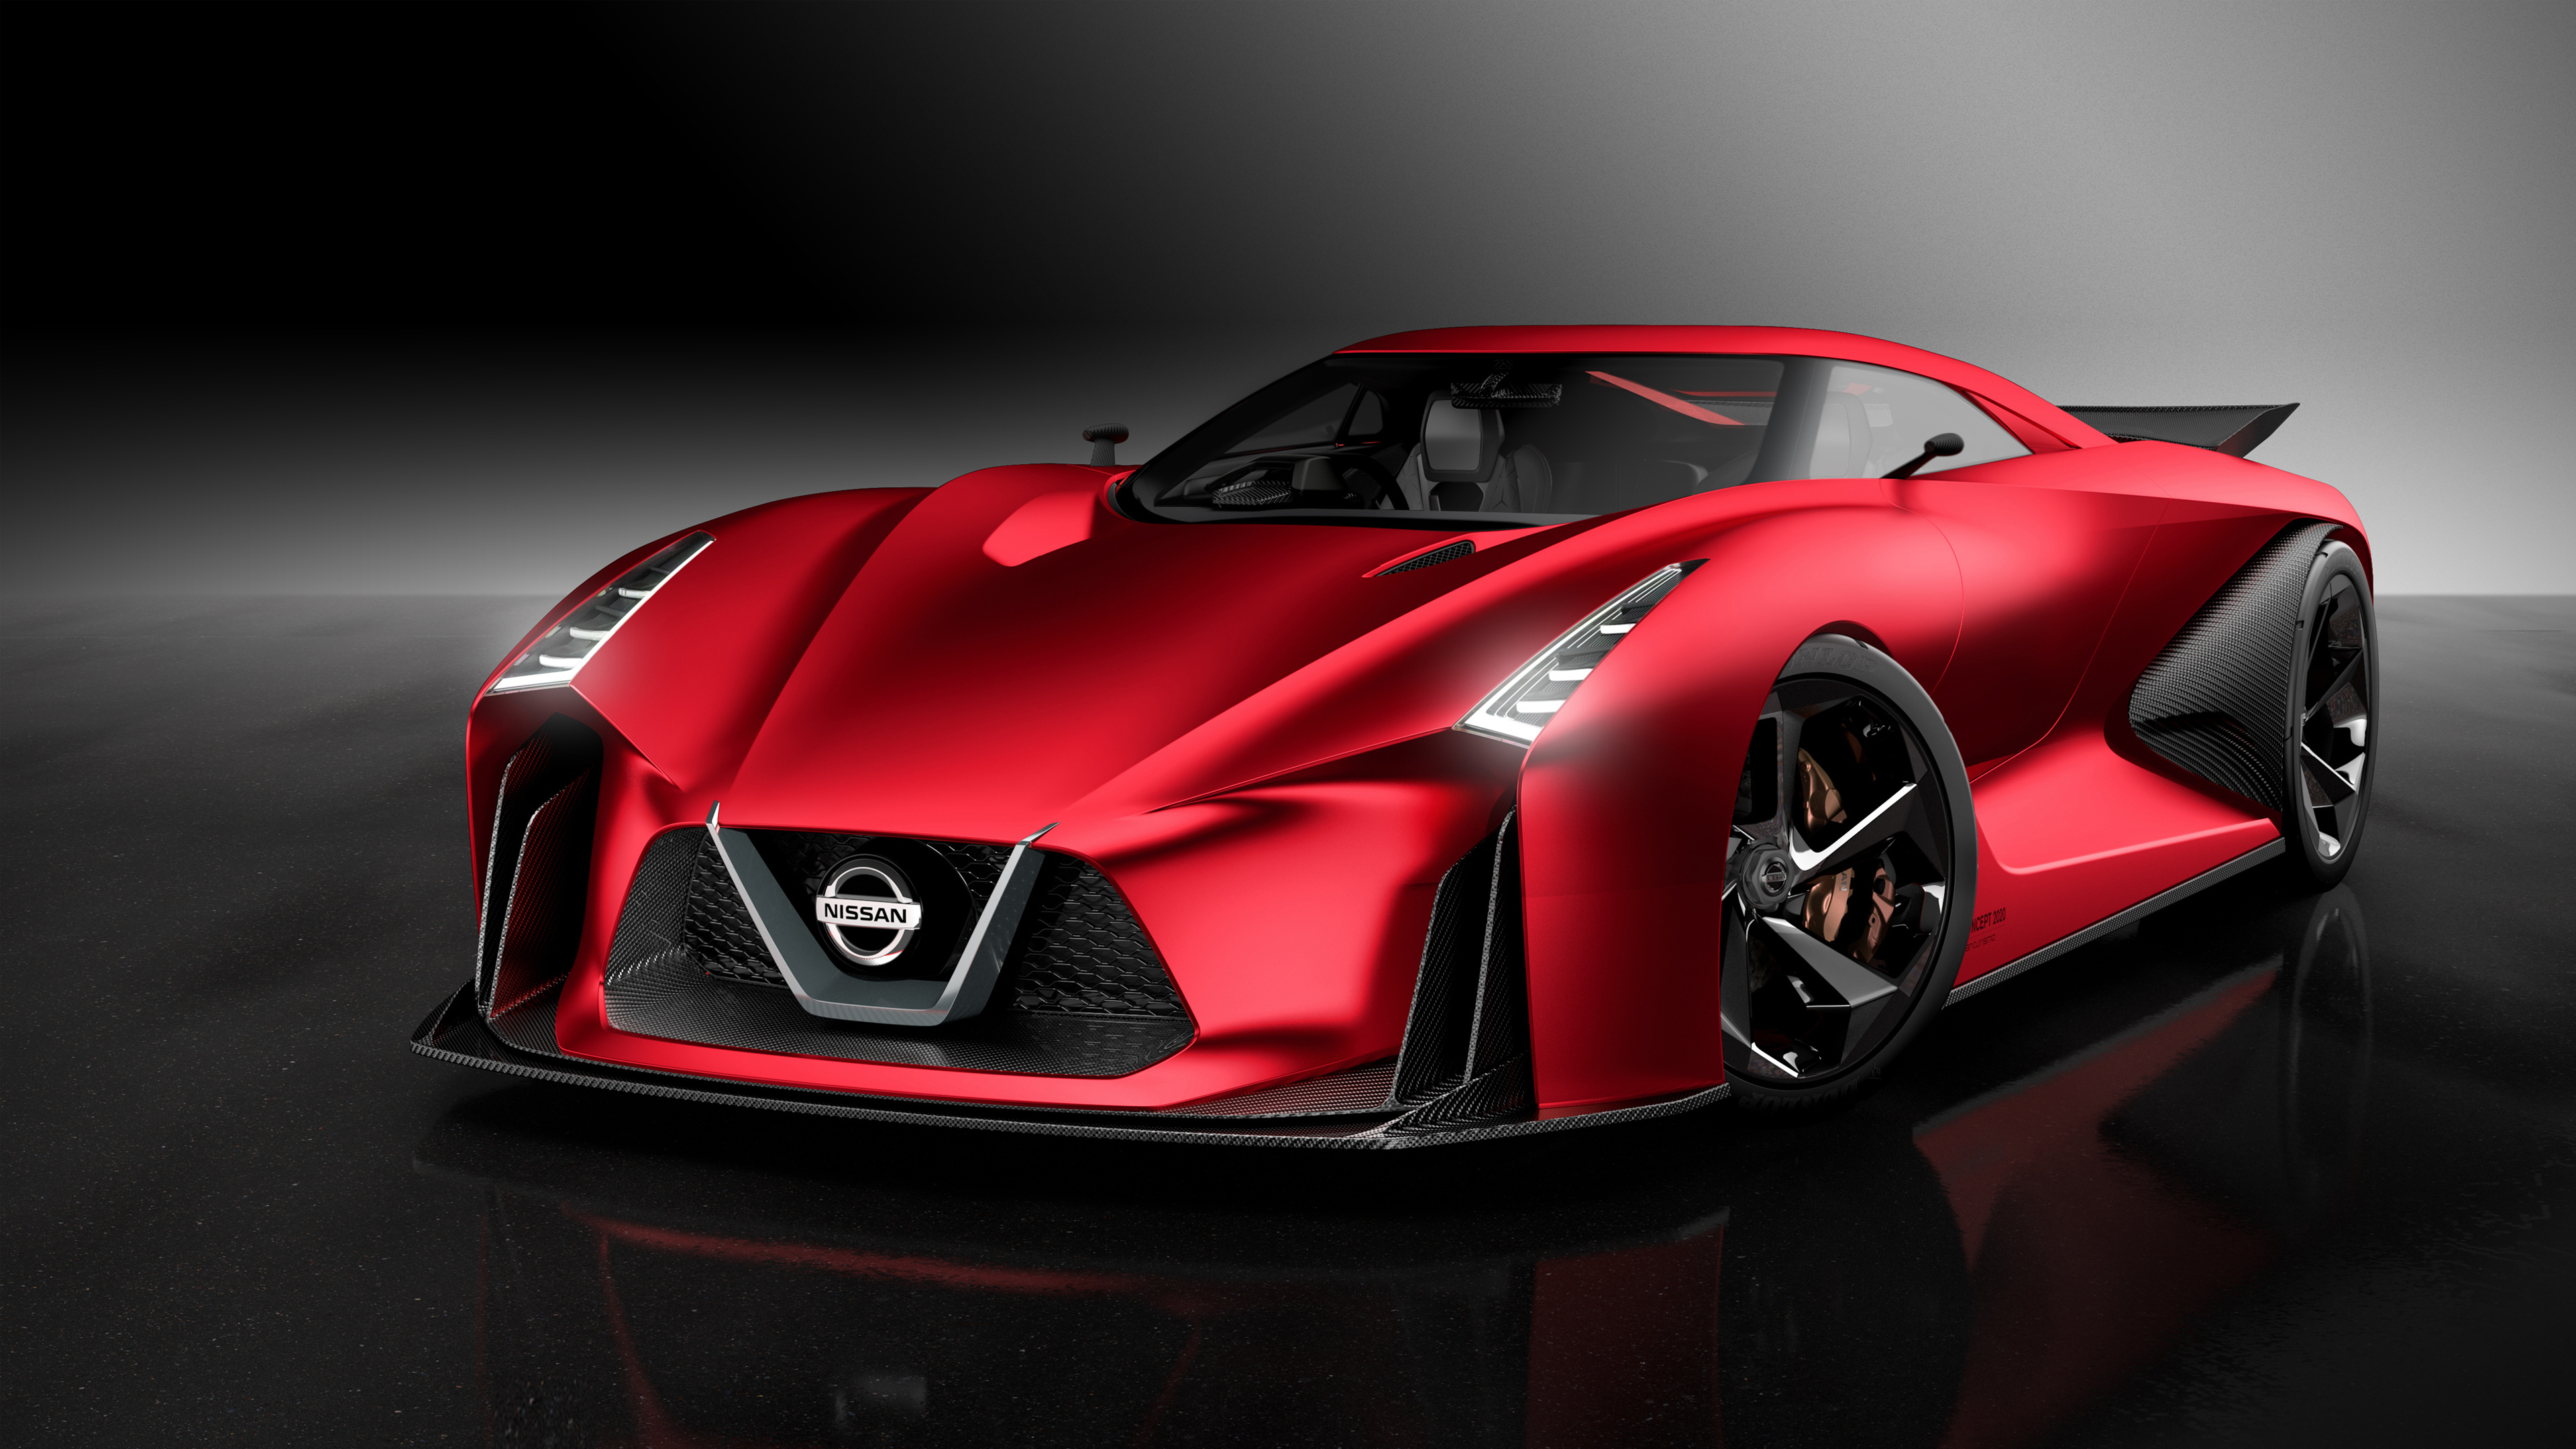 3840x2160 - Nissan Concept Wallpapers 1